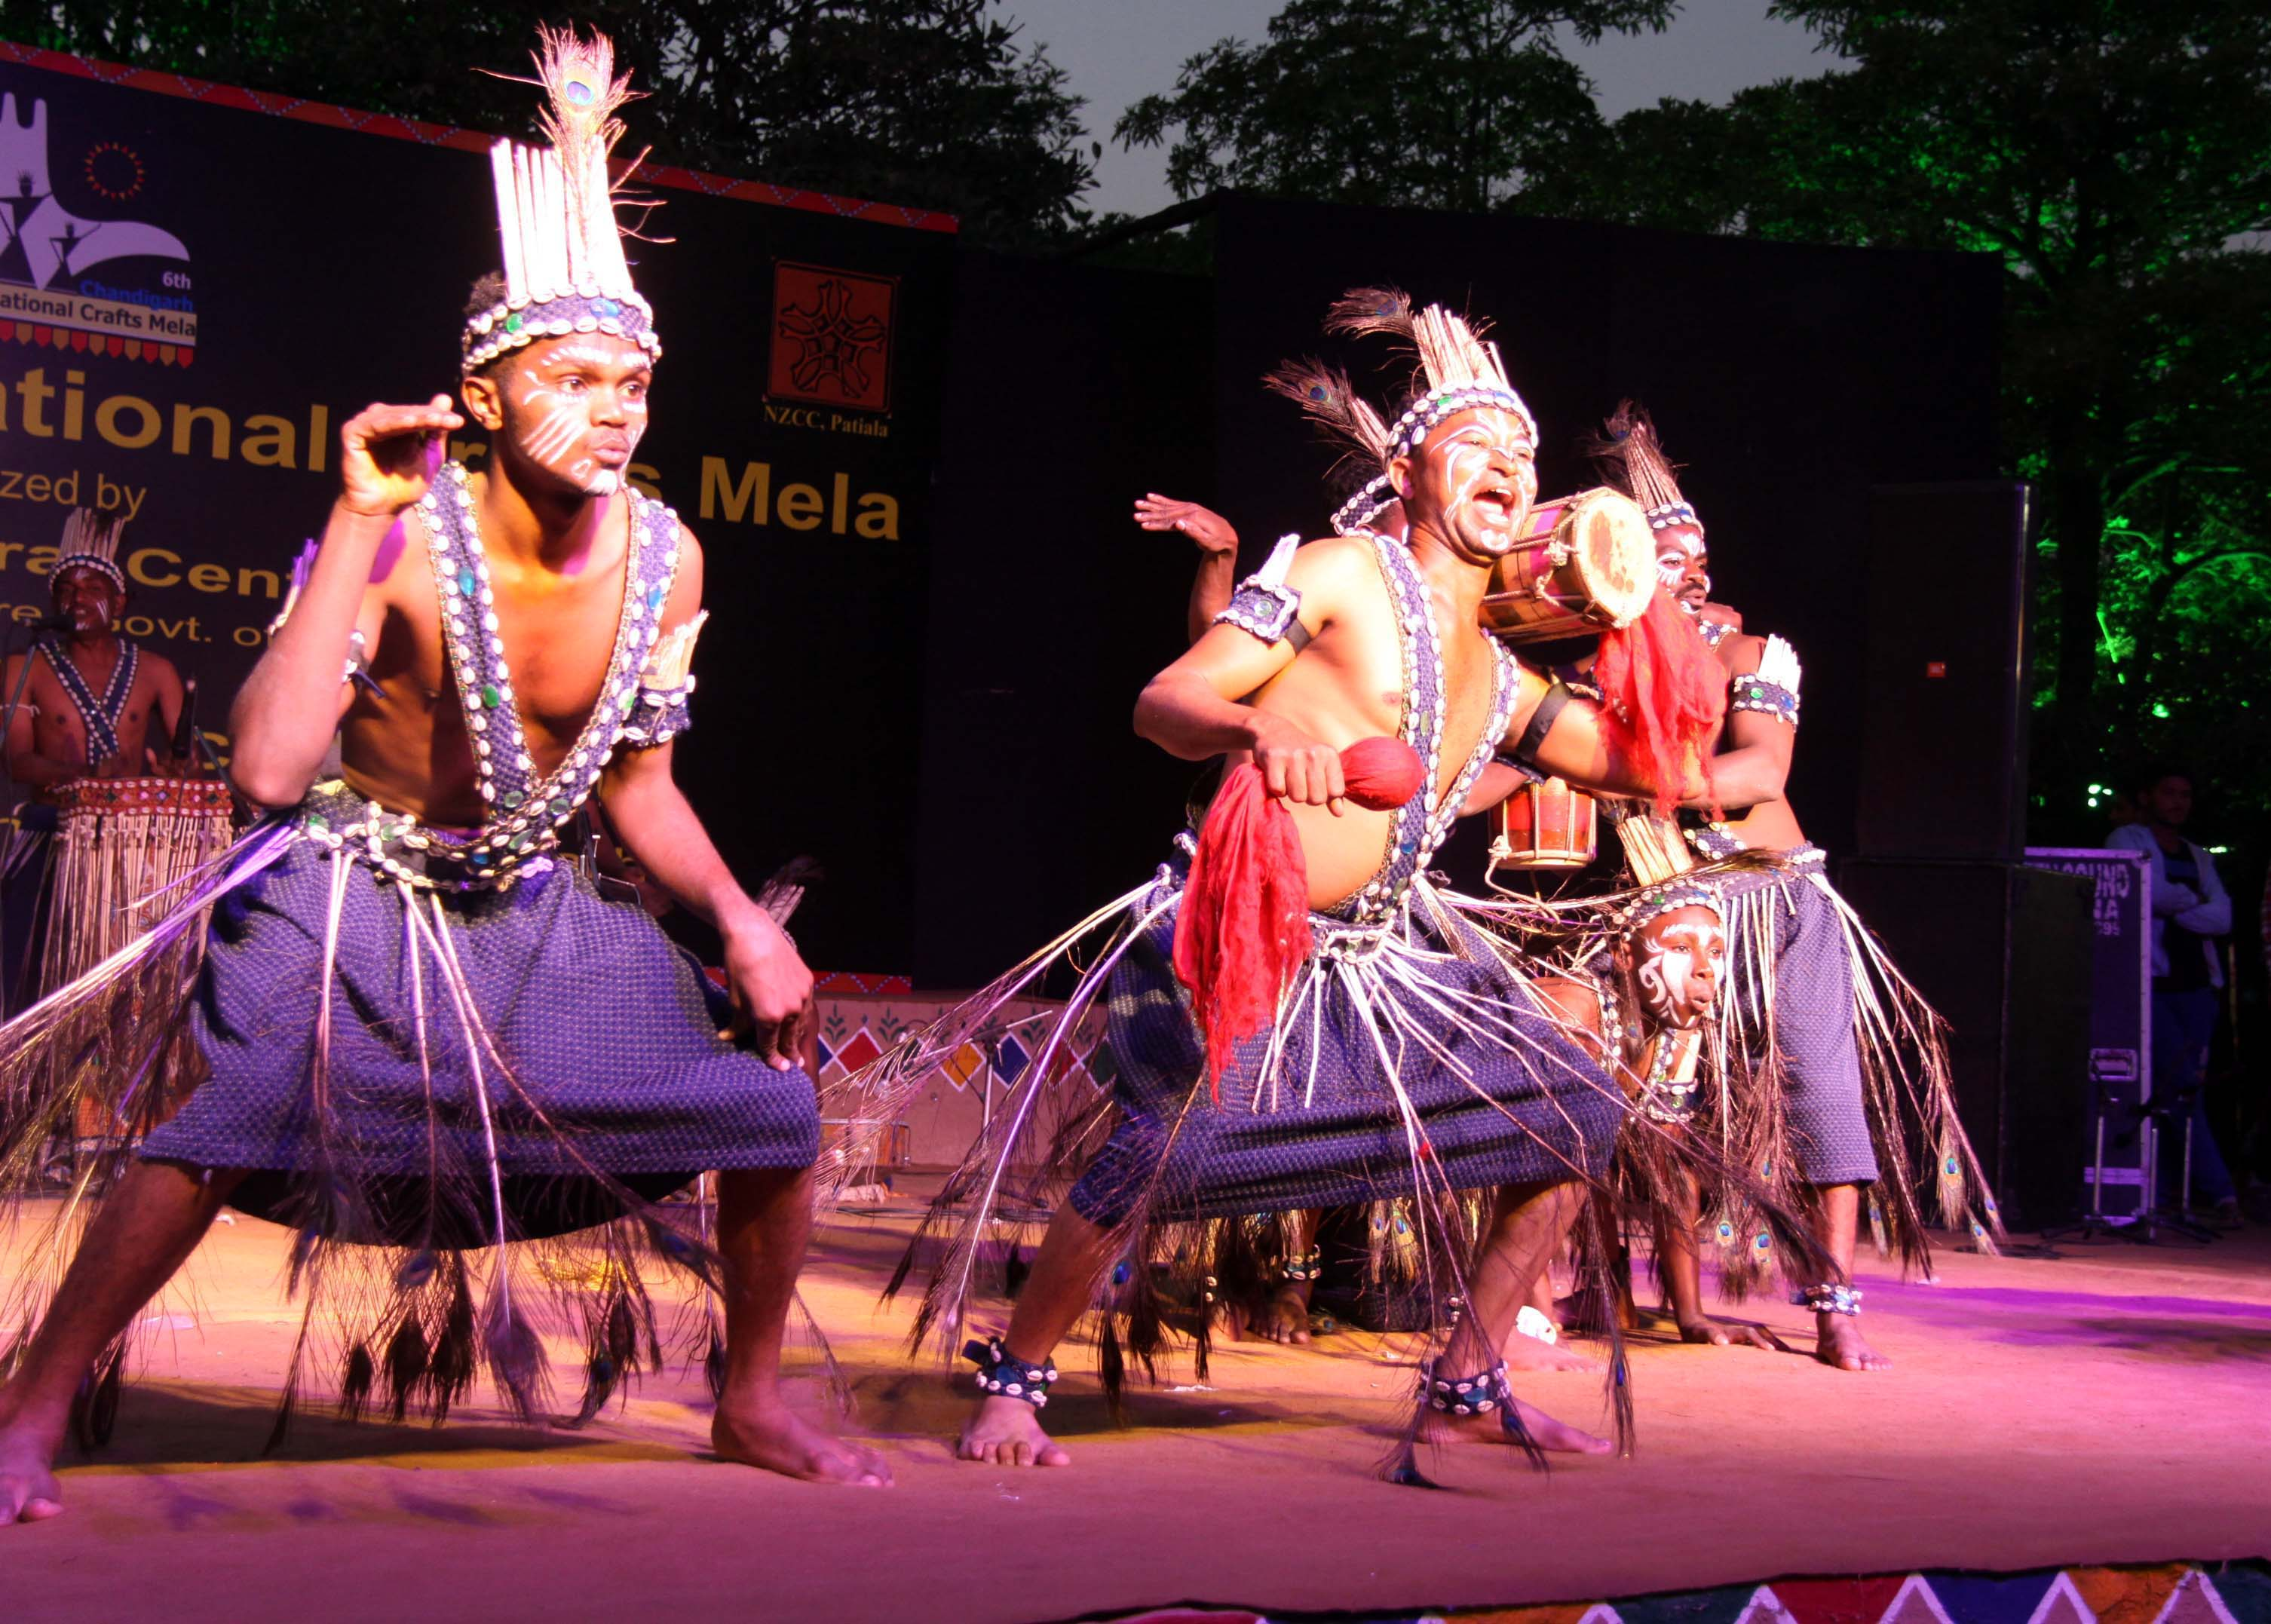 Artists performing Folk Dances at the closing ceremony of 6th Chandigarh National Craft Mela at Kalagram, Chandigarh on Sunday, November 23, 2014.